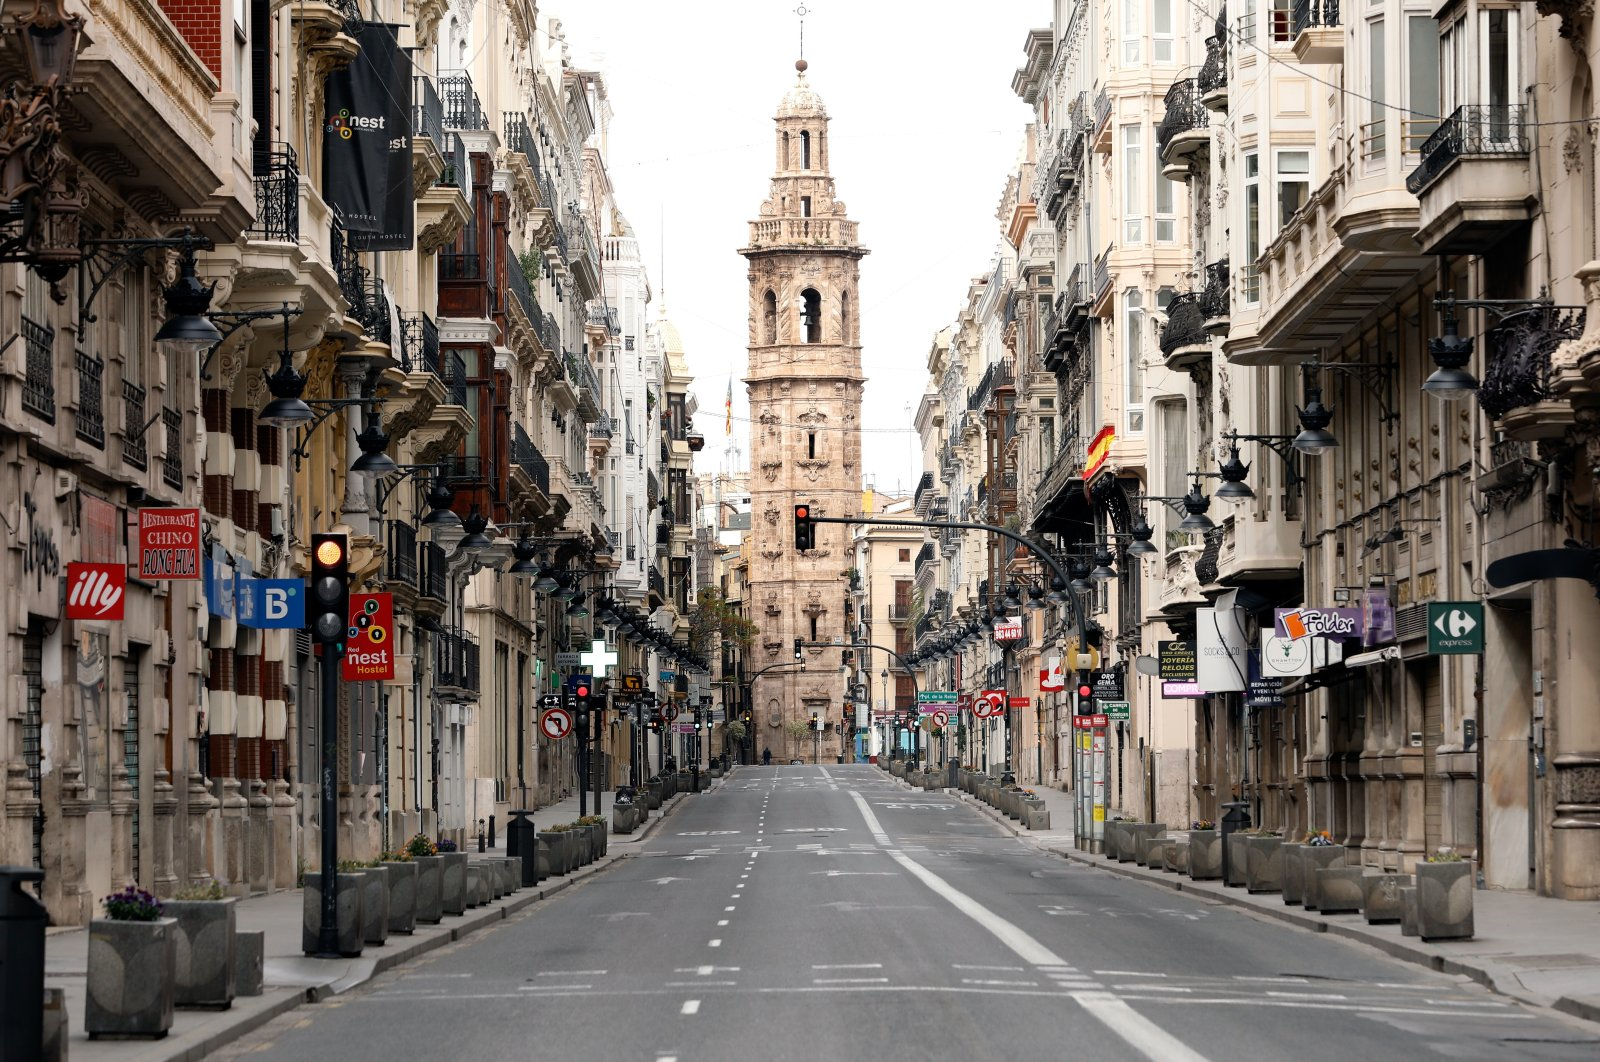 View of a church tower at the end of a deserted street in Valencia, eastern Spain, April 11, 2020. For the first time in centuries, many church bells across Spain will not be ringing on the eve of Easter Sunday, as most bell-ringers won't be able to access their churches and cathedrals due to the nationwide lockdown imposed by the government in a bid to slow down the spread of the pandemic COVID-19 disease. (EPA Photo)